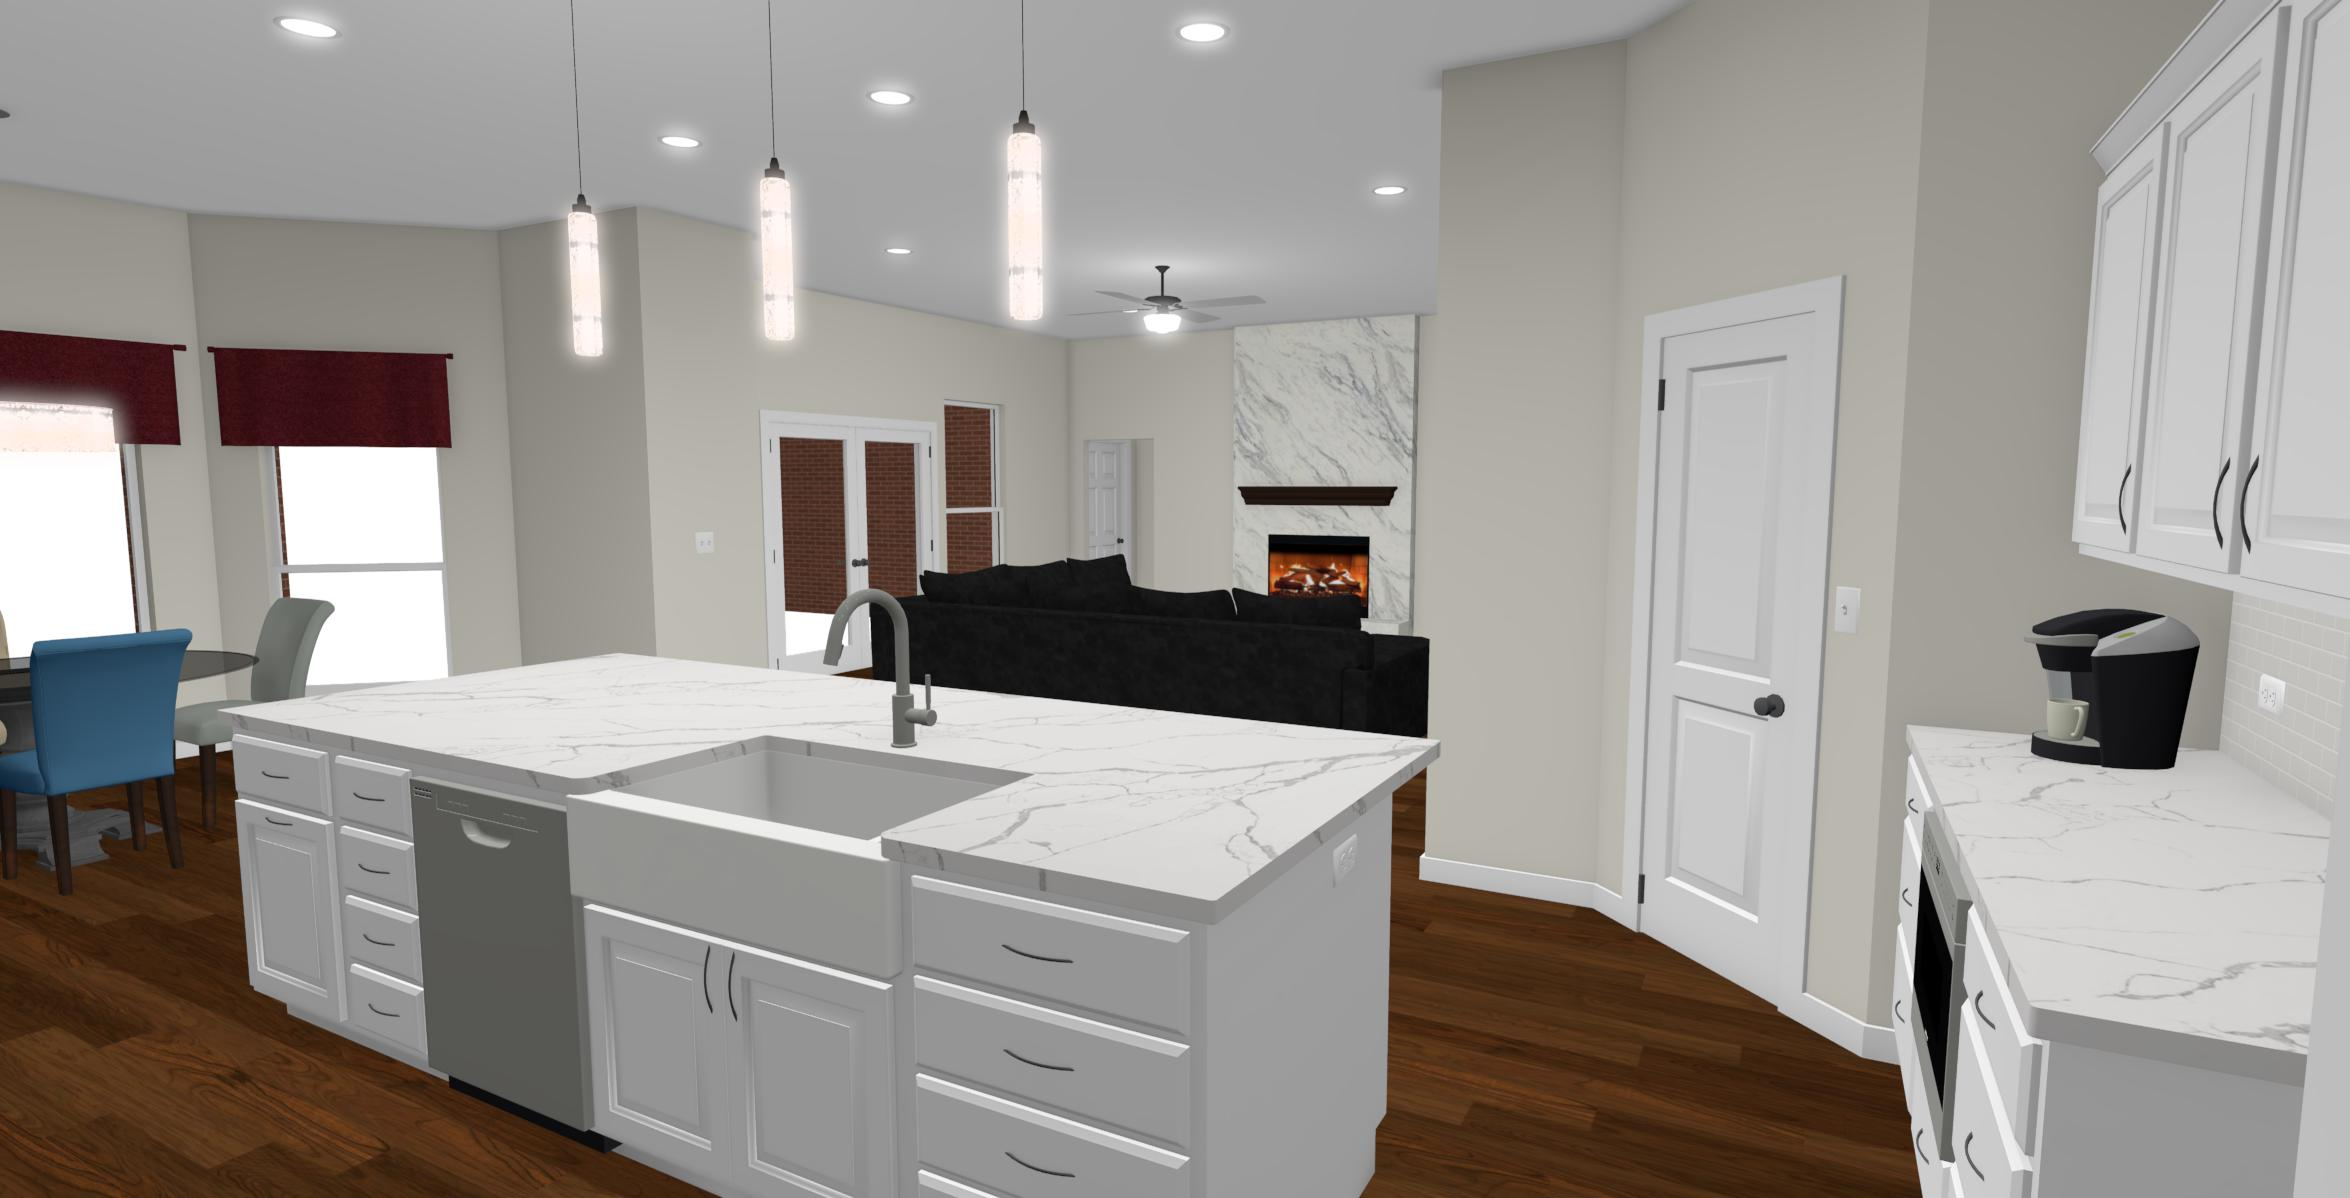 Admirable Our Foolproof 5 Step Process To Managing Your Remodel Download Free Architecture Designs Scobabritishbridgeorg